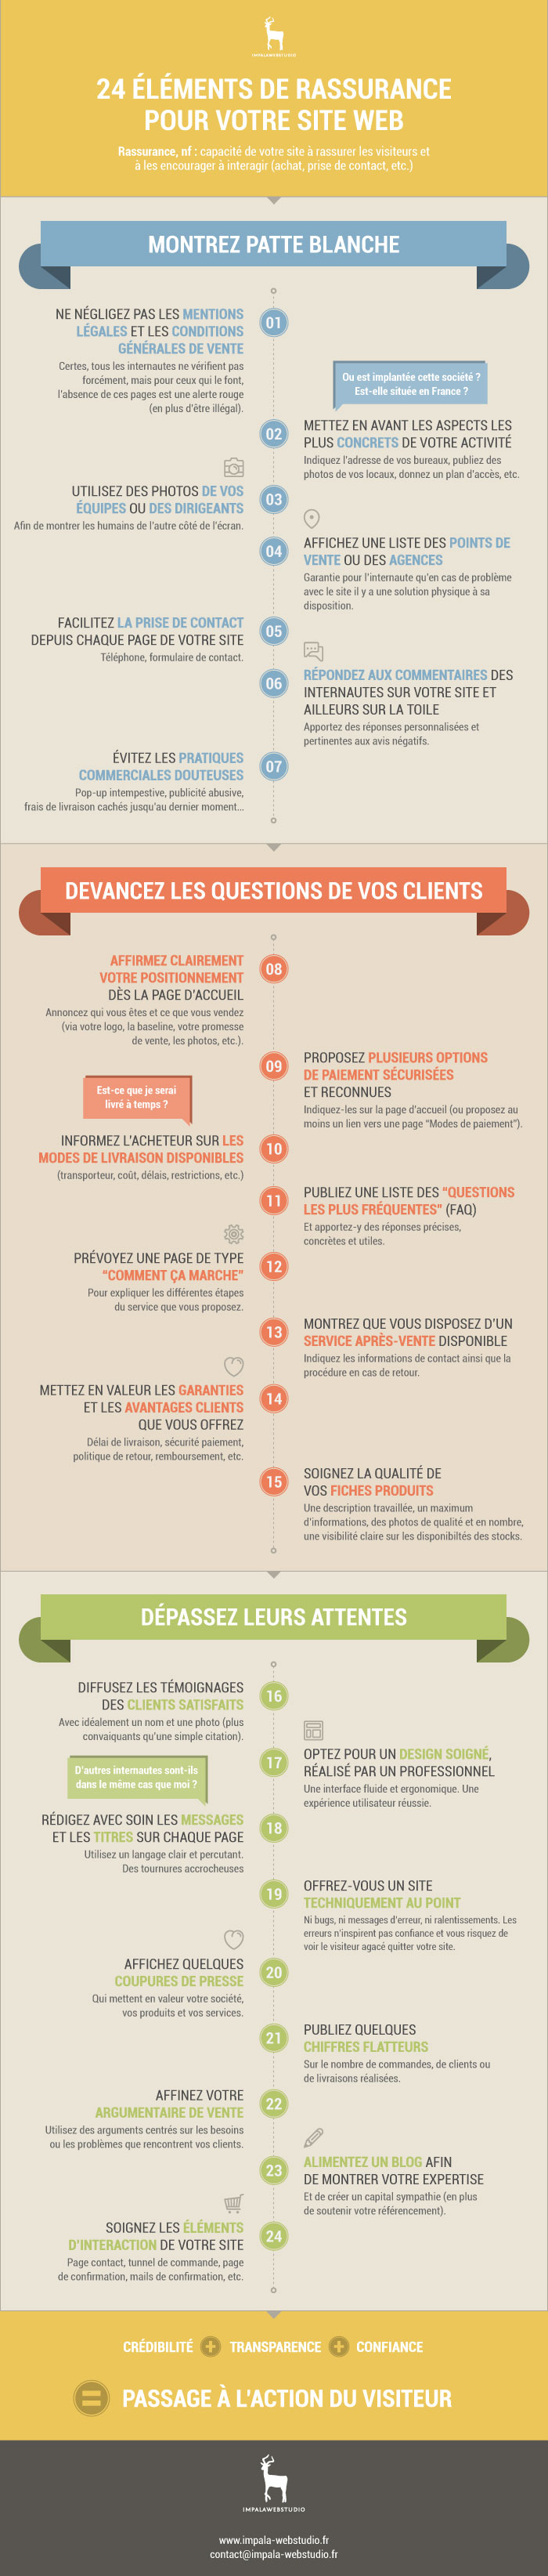 infographie-elements-de-reassurance-site-internet